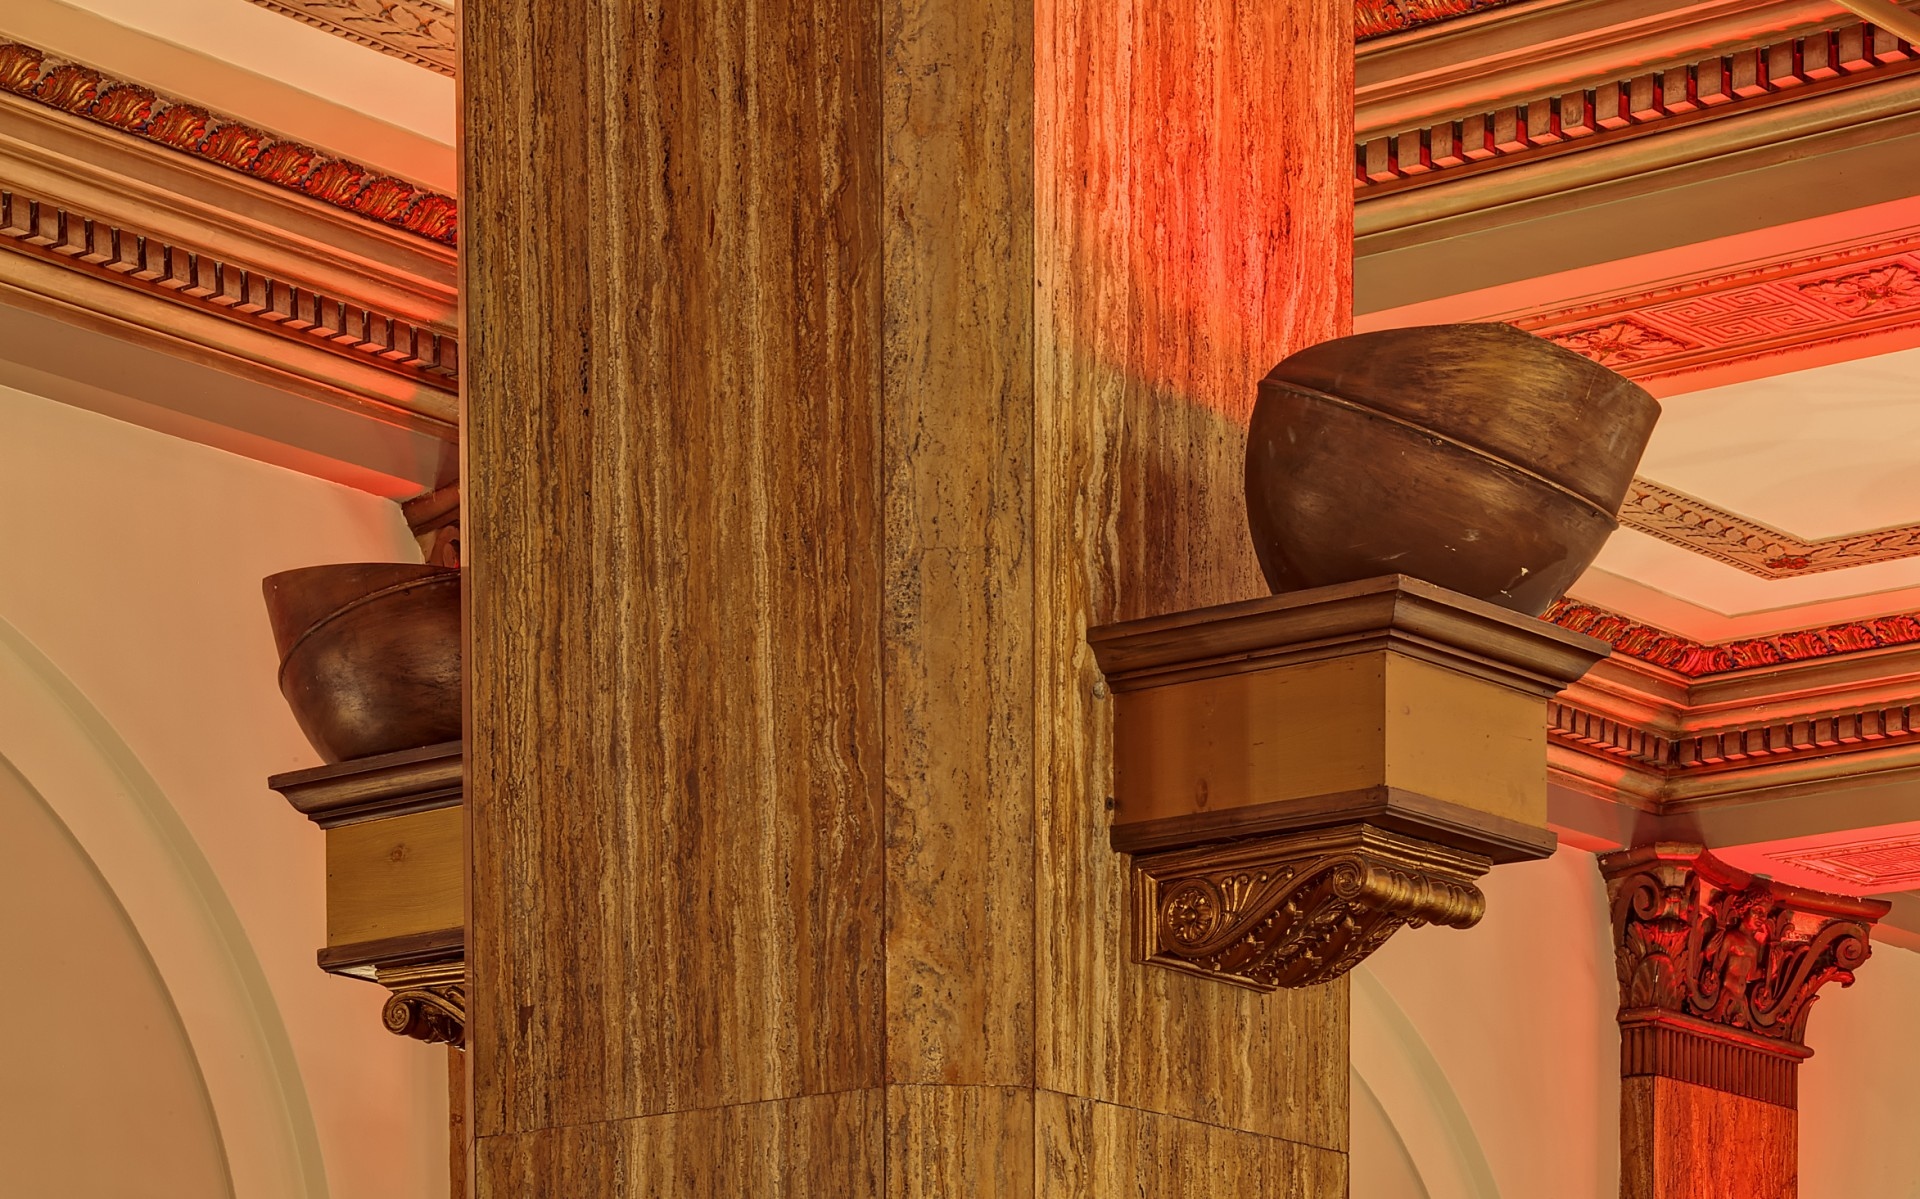 The luminaires were installed inside sconces attached to large ornate columns.